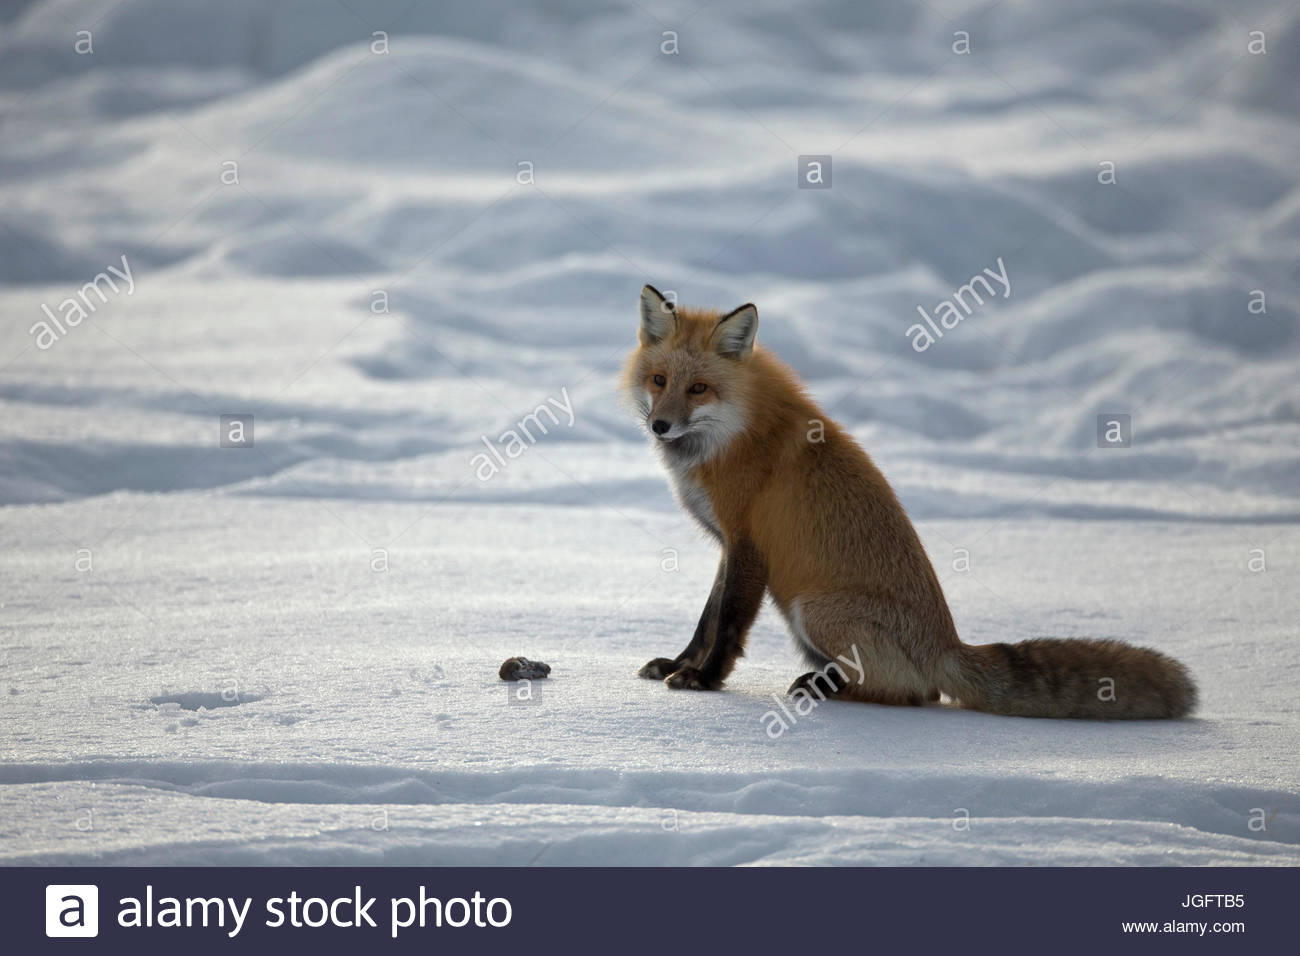 A red fox, Vulpes vulpes, hunting in Yellowstone National Park. Stock Photo